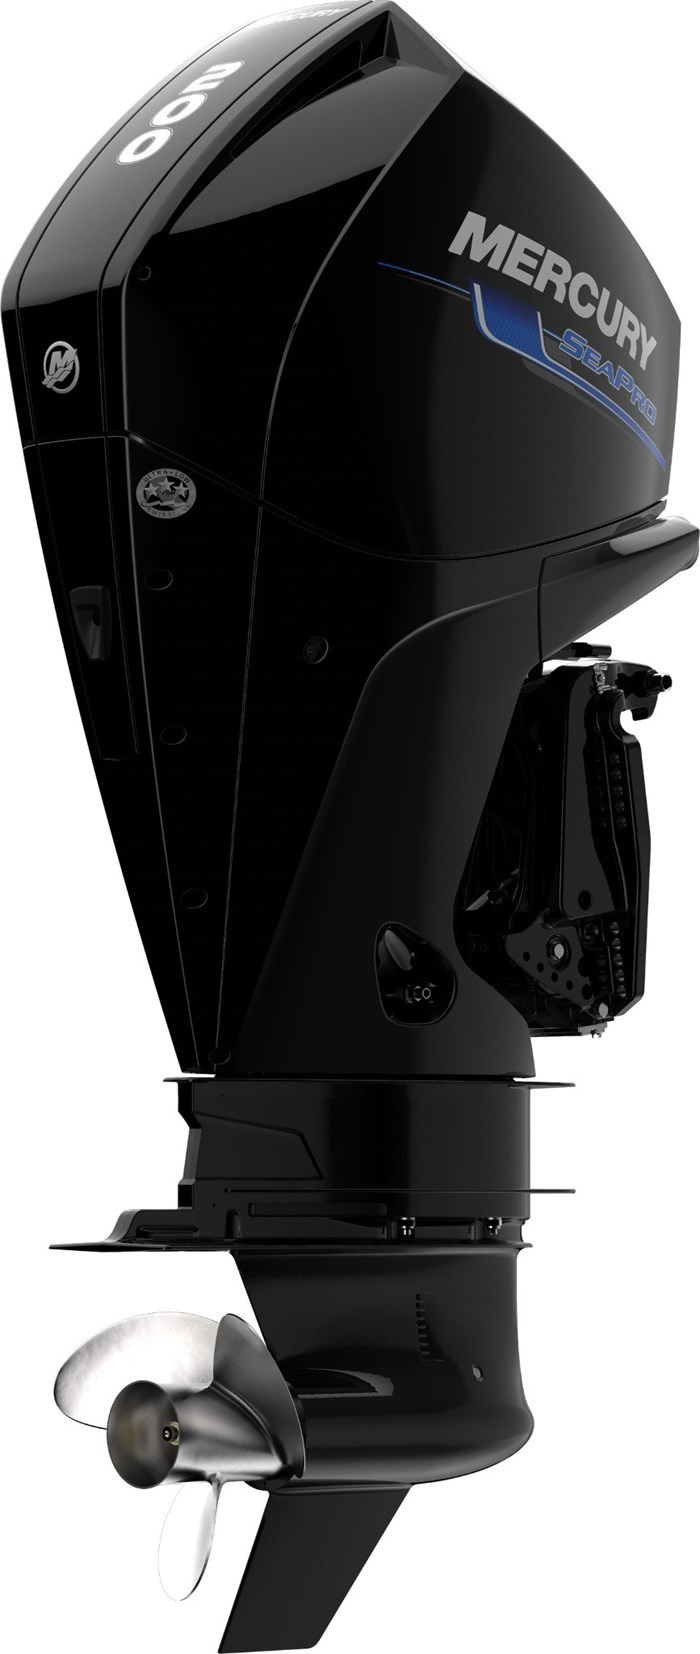 2020 Mercury 200XL V-6 4-Stroke SeaPro DTS Commercial Outboard Photo 8 of 27